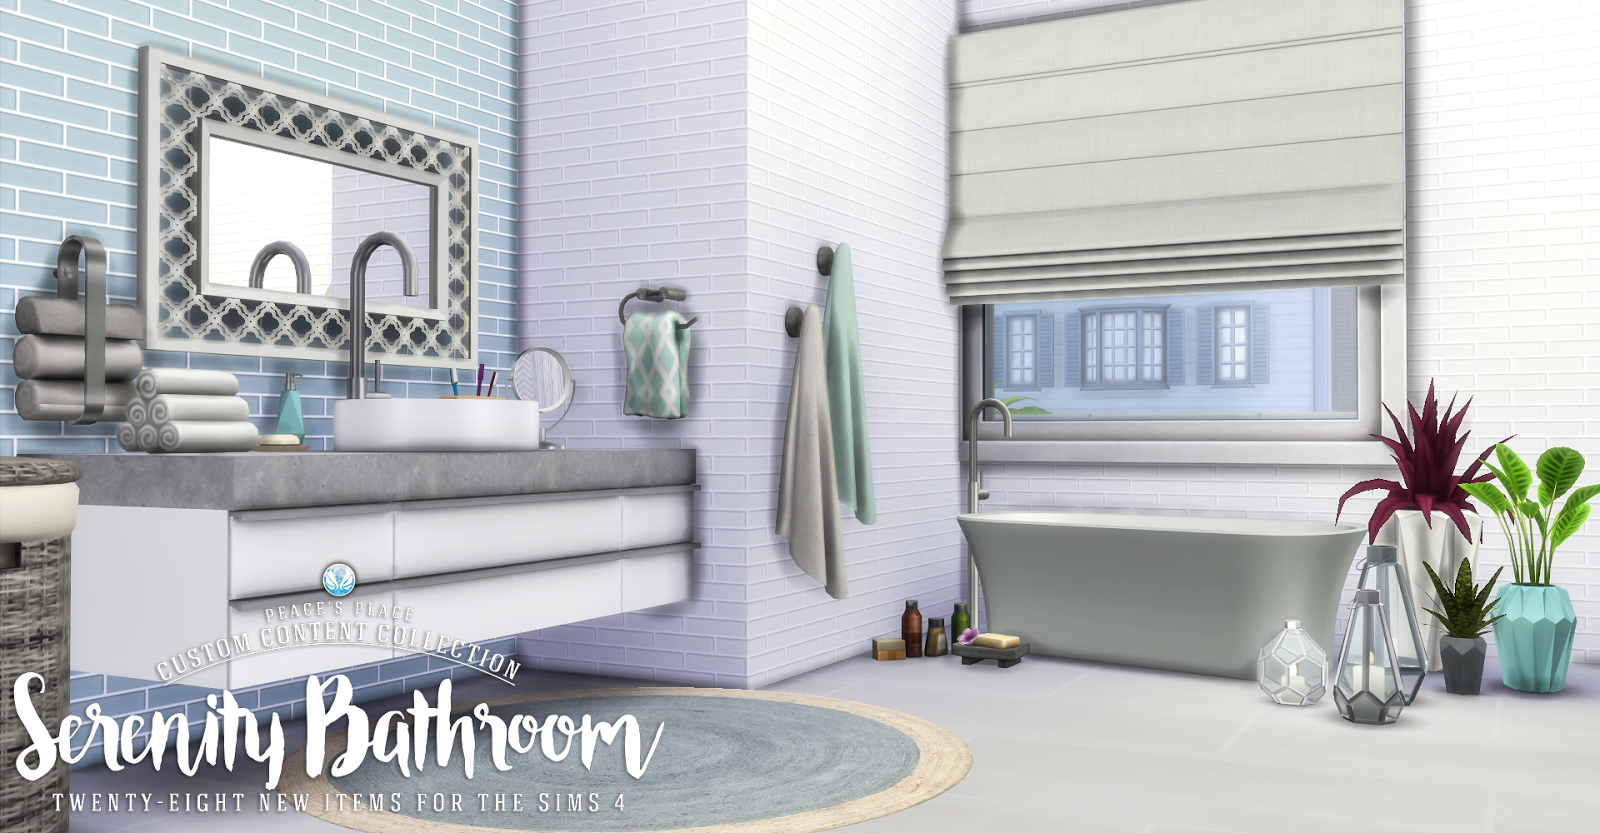 You may request that your data not be shared with third. My Sims 4 Blog: Updated - Serenity Bathroom Set - 28 New ...